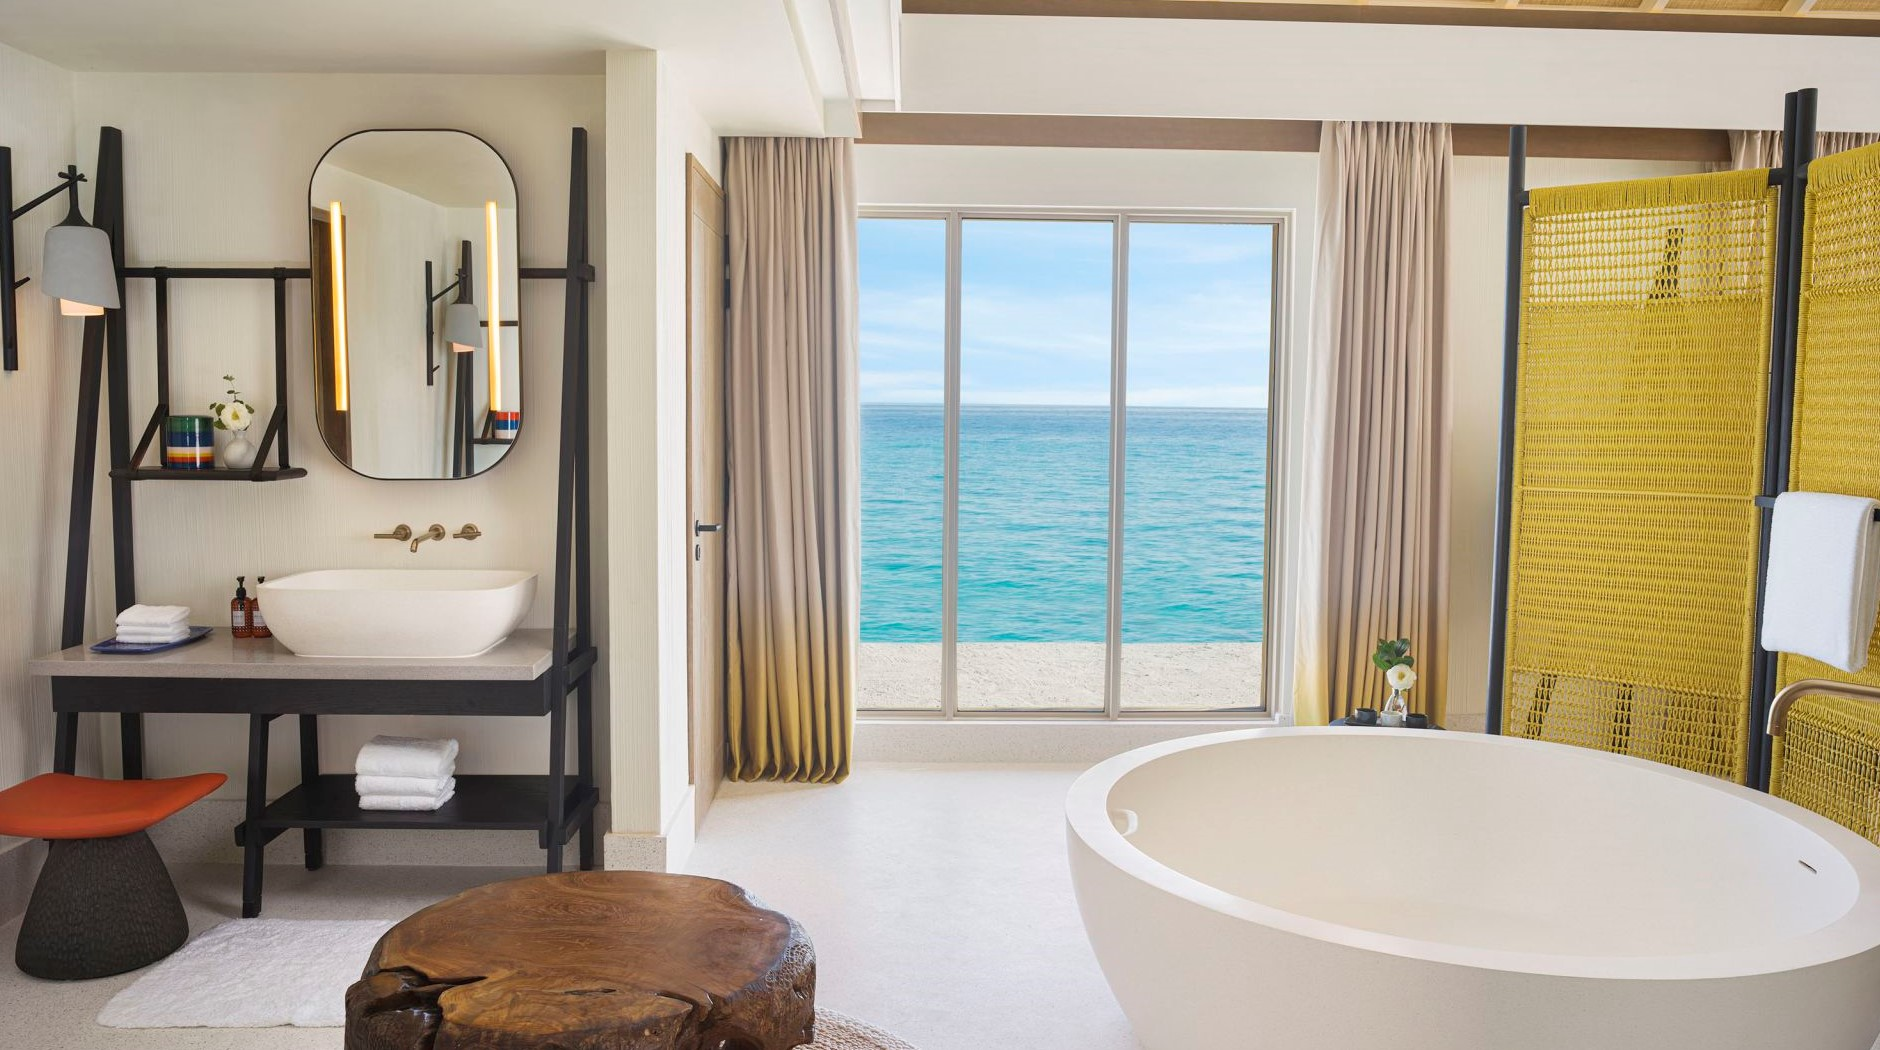 InterContinental Maldives 3 Bedroom Lagoon Residence bathroom